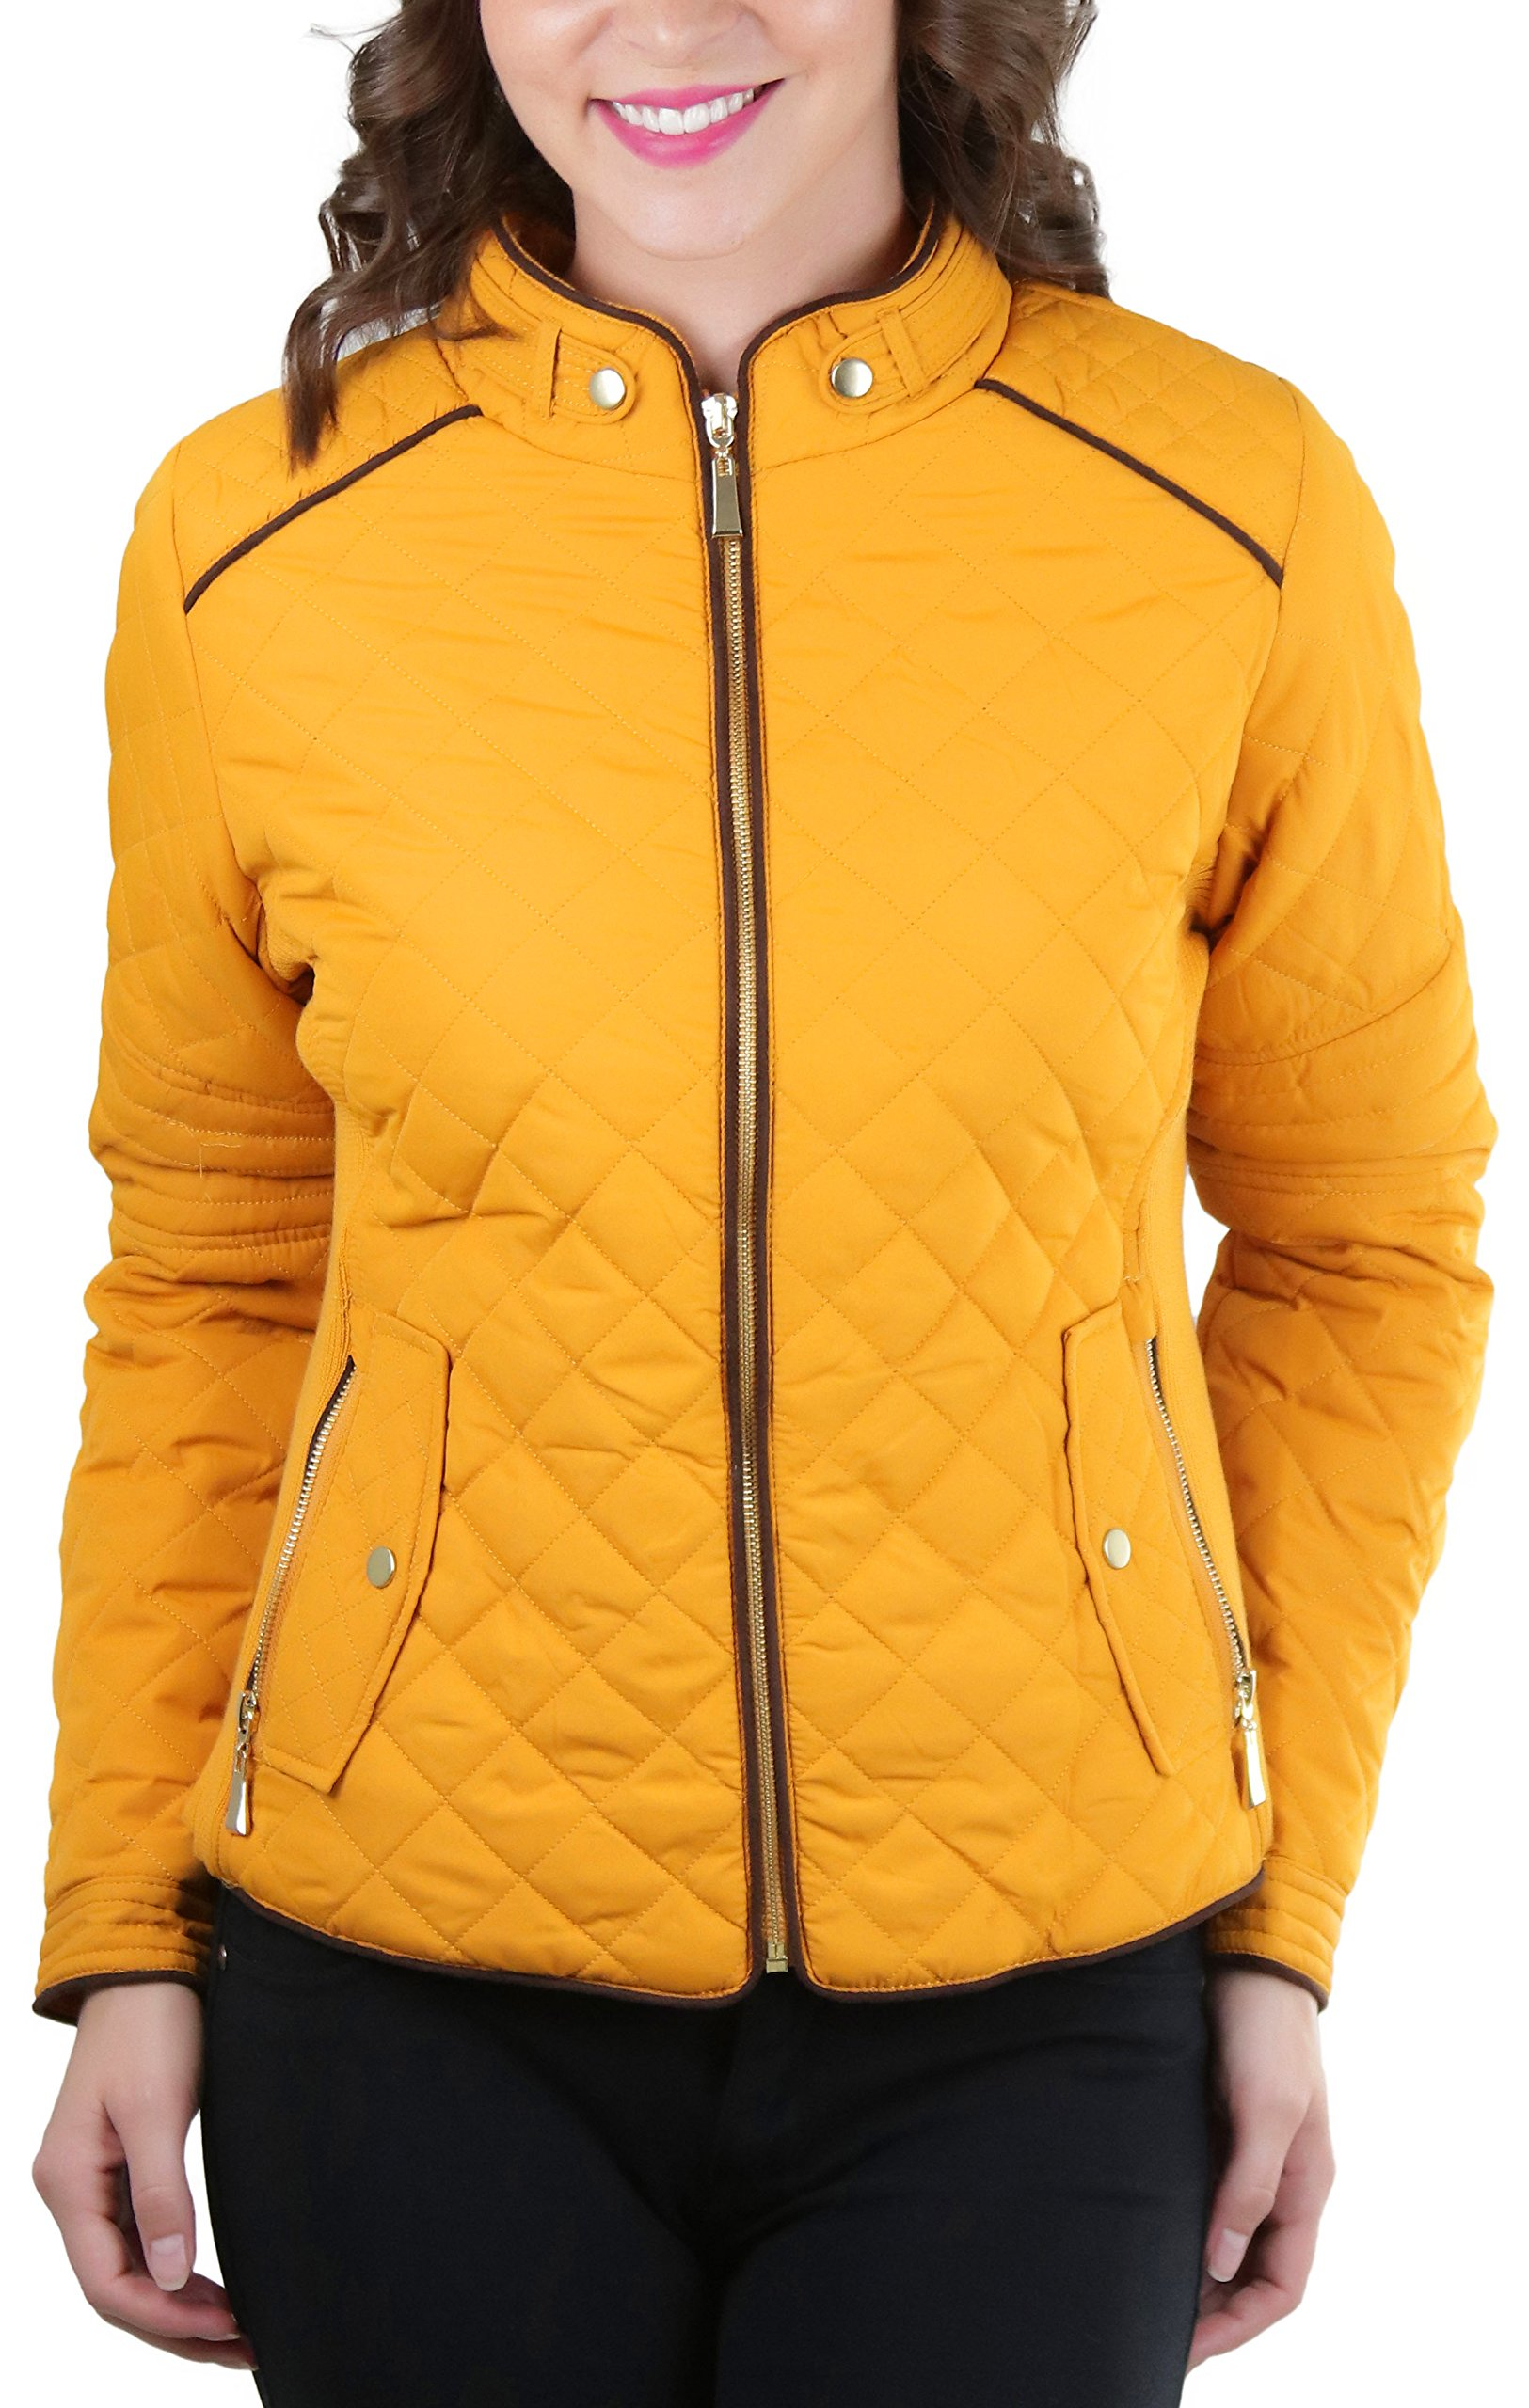 ToBeInStyle Women's Quilted Padded Jacket Suede Piping - Dark Mustard - Medium